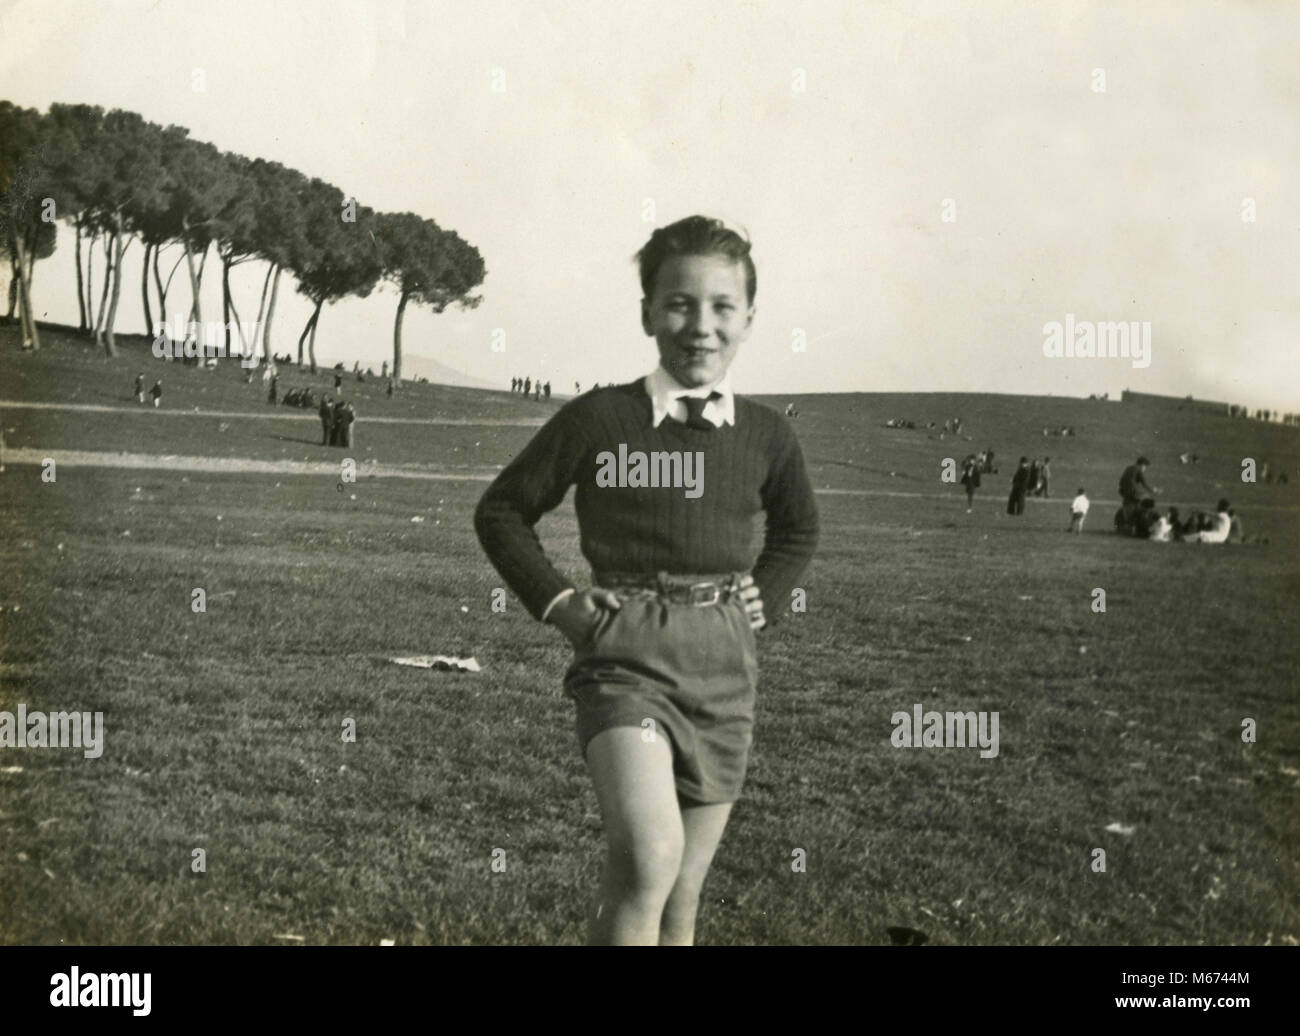 Young boy, Terracina, Italy 1930s - Stock Image